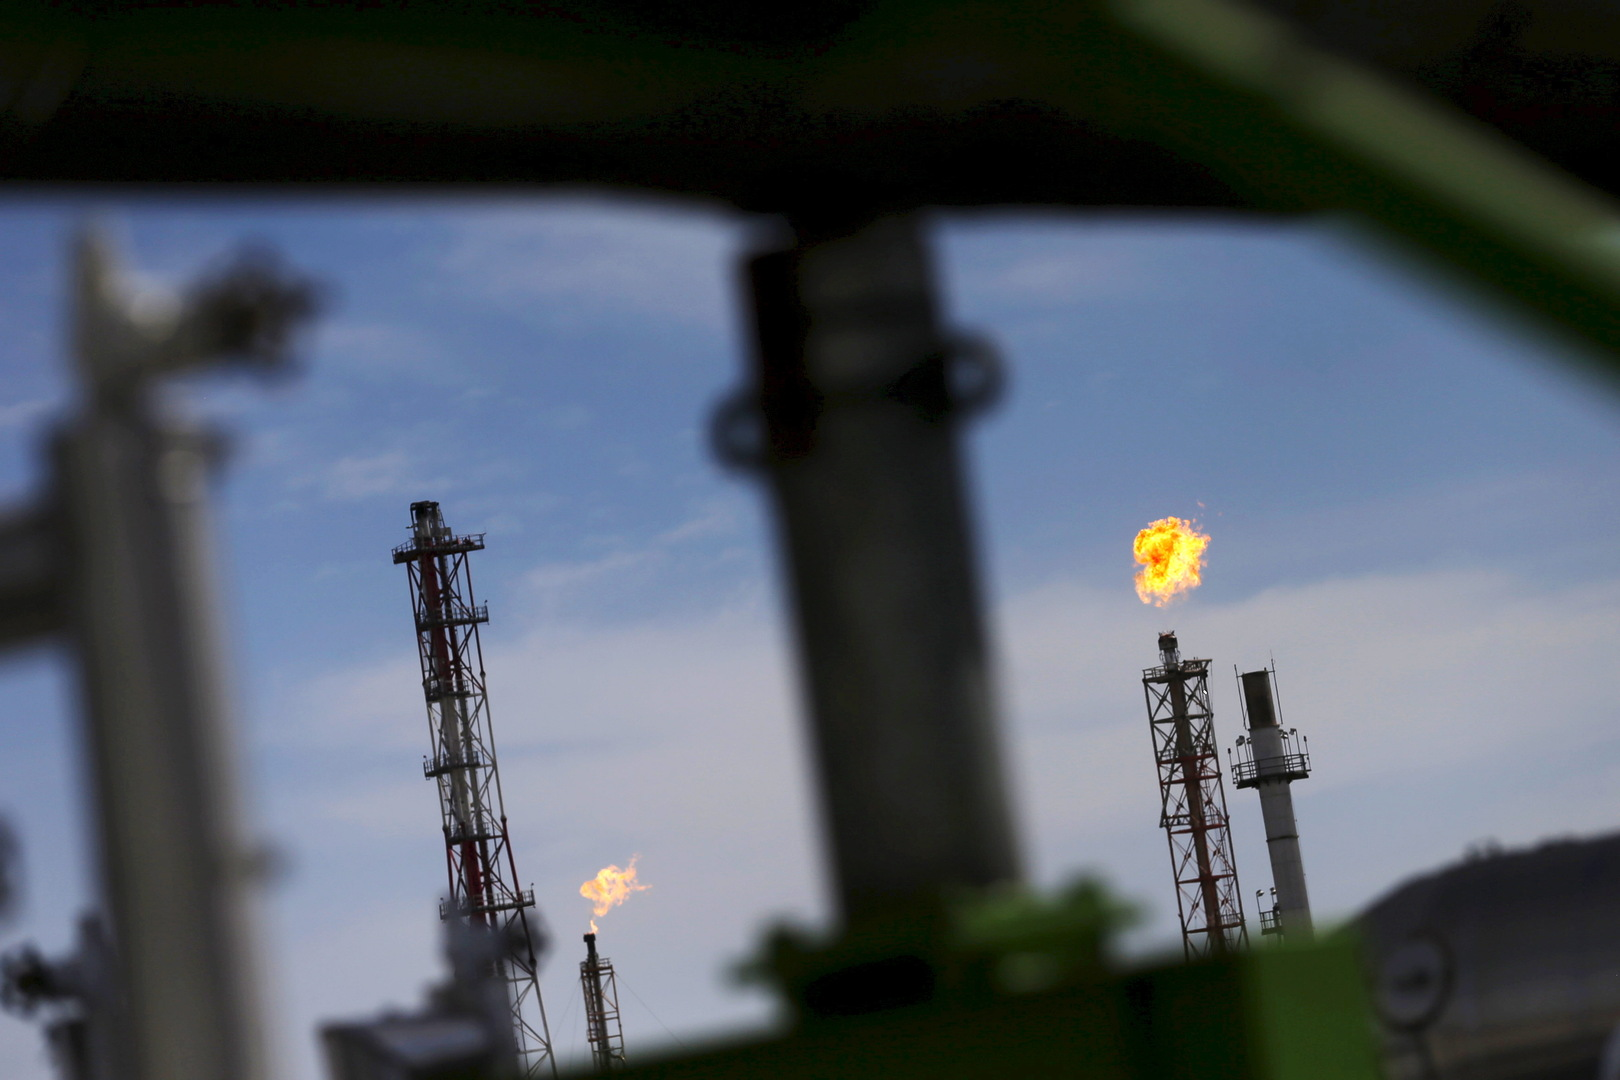 After several days, the oil price drops